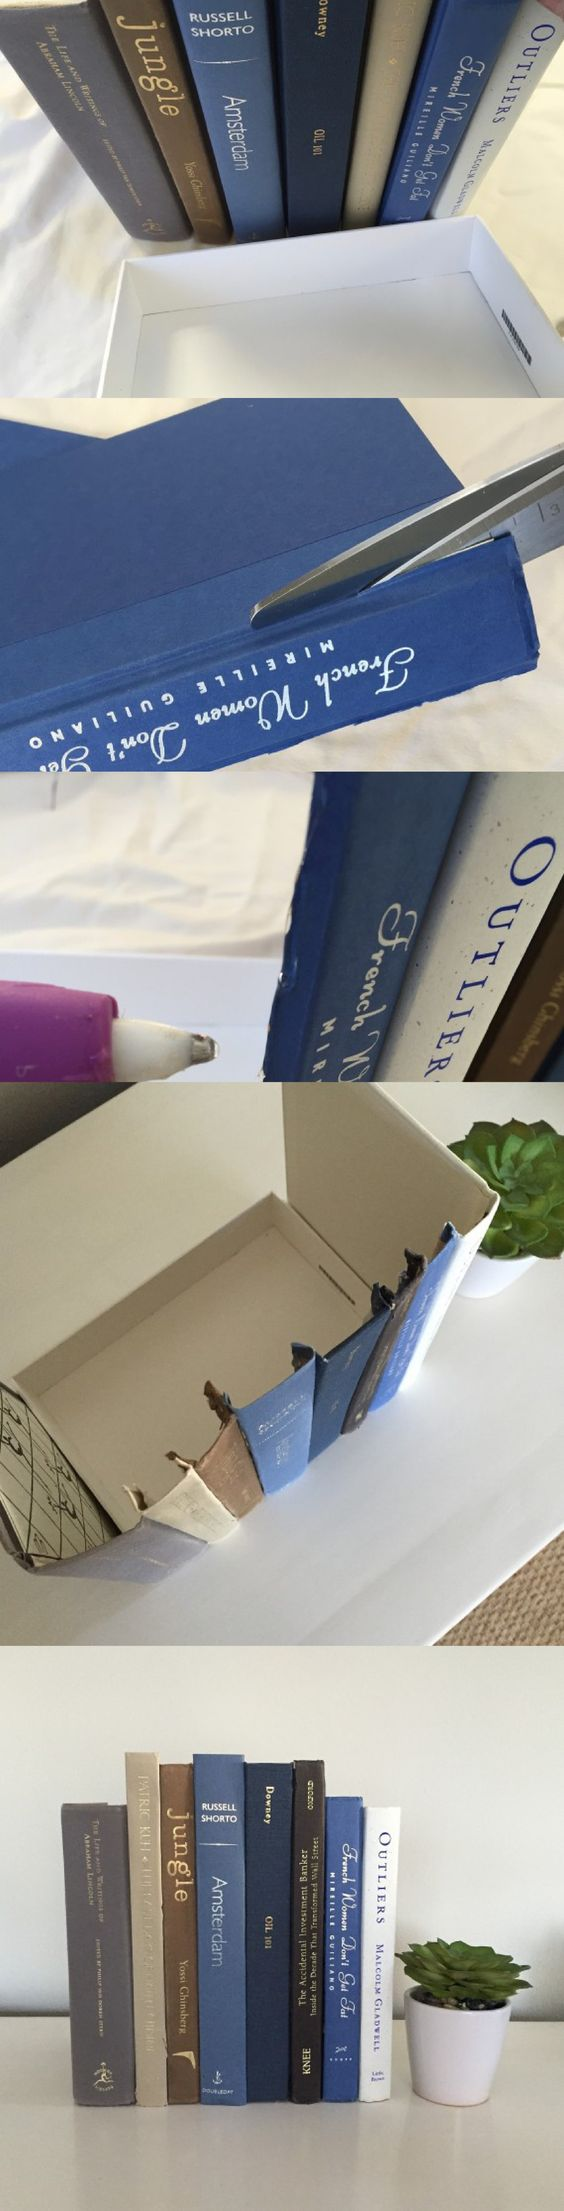 A Clever Way to Hide Clutter: Behind Fake Books!   Martha Stewart Living - Are you looking for a way to hide wires, a router, or maybe your remotes? Hide your clutter in plain sight behind these DIY fake books. Even better, they are easy (and inexpensive!: